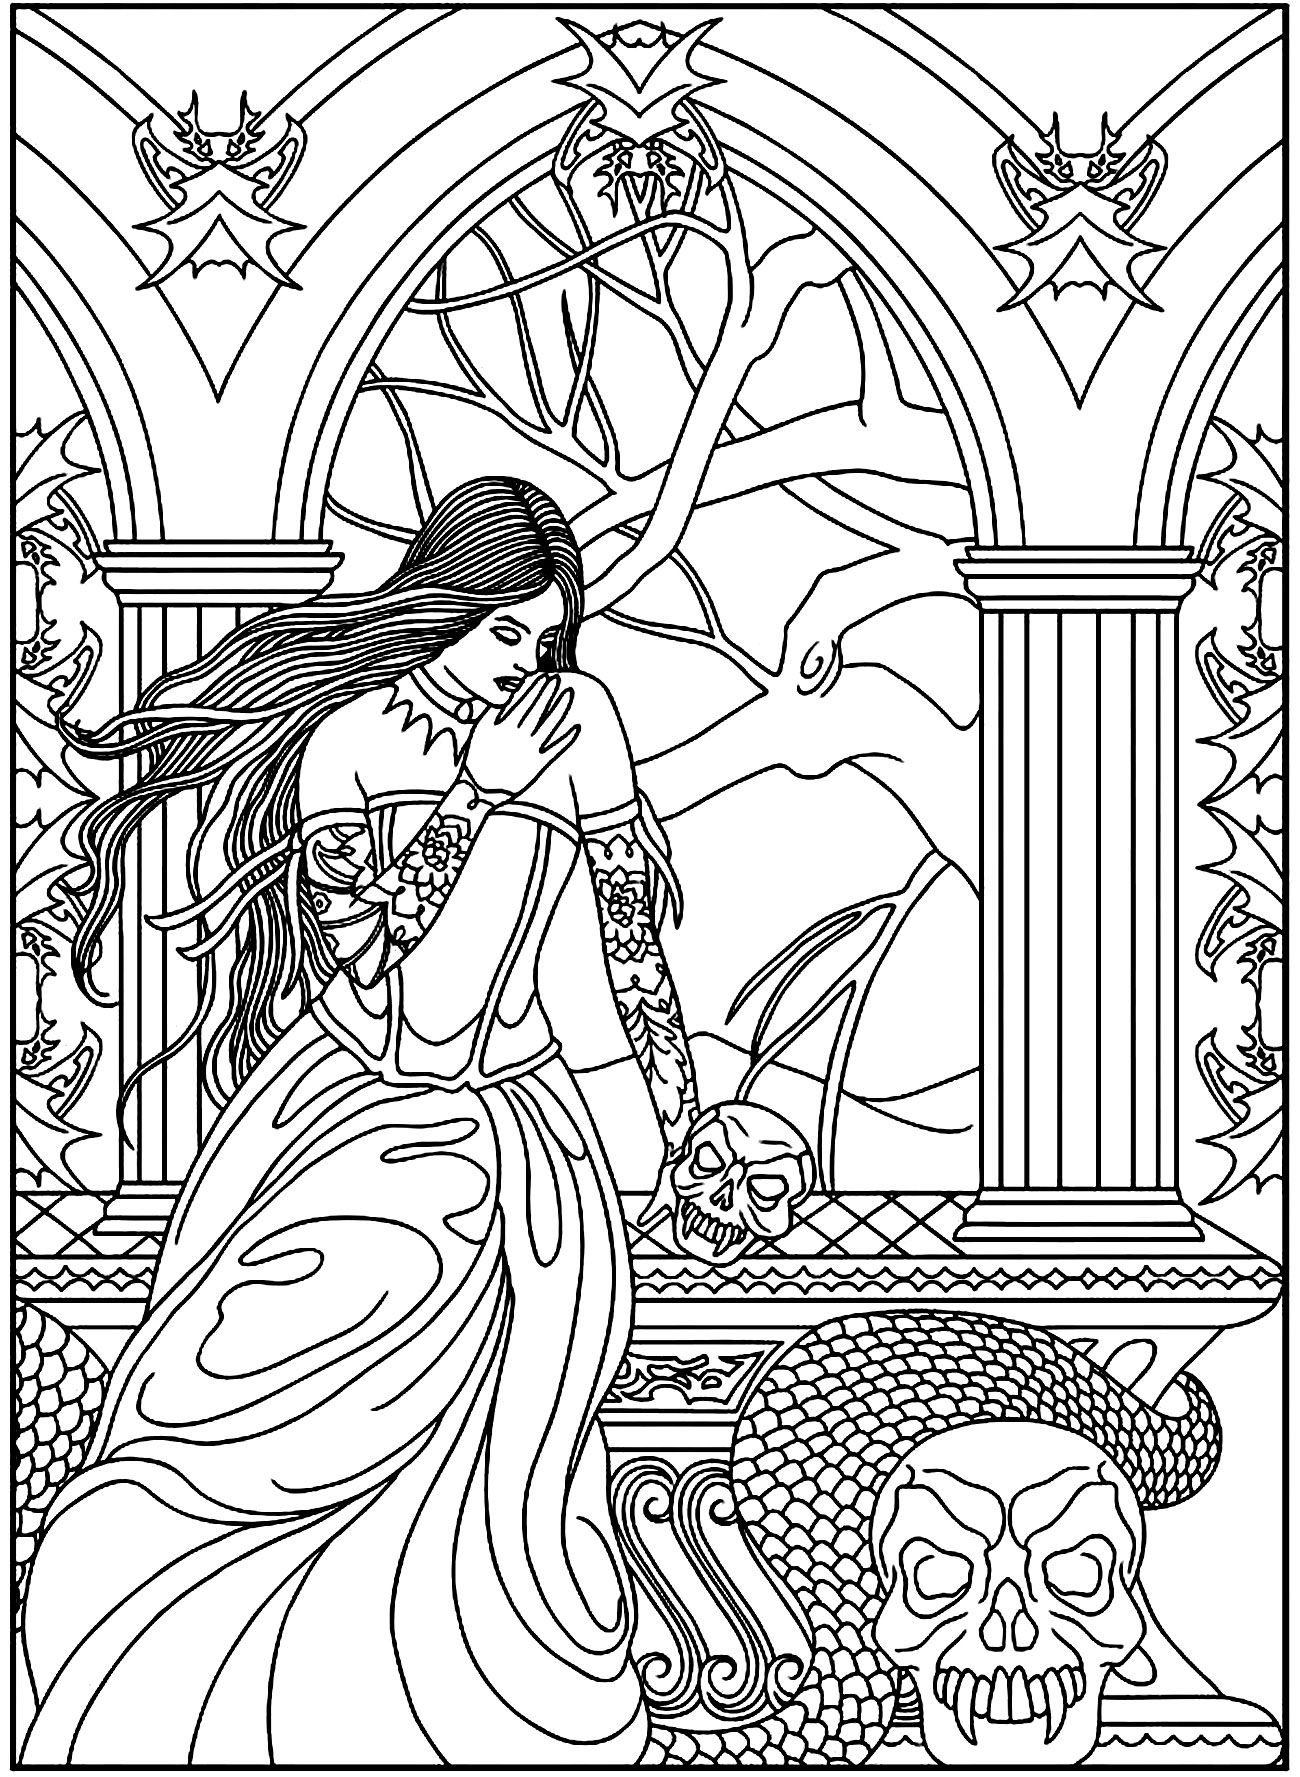 To print this free coloring page «coloring-adult-fantasy-woman ...